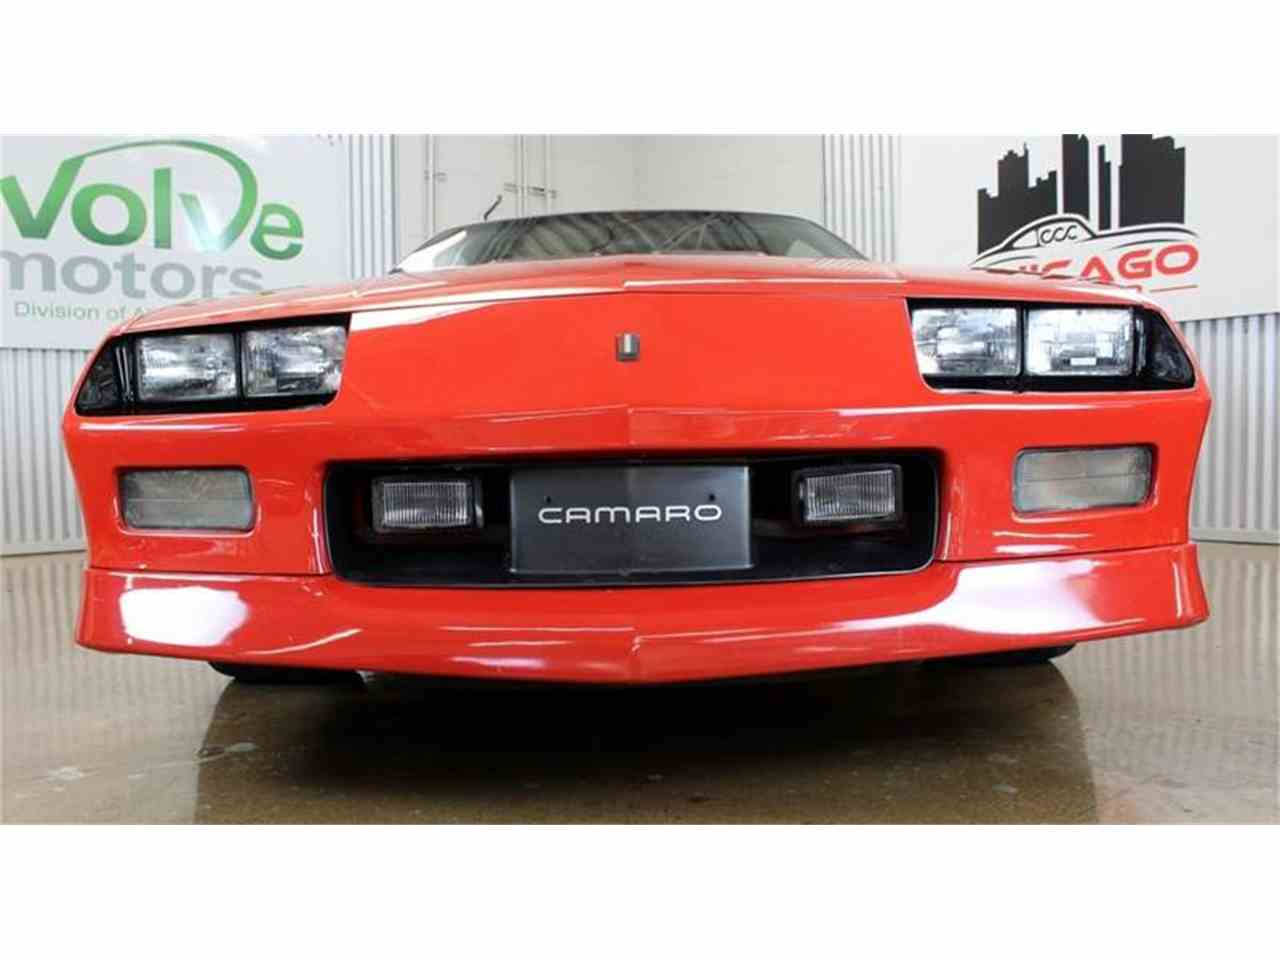 Large Picture of 1985 Chevrolet Camaro located in Chicago Illinois - $13,900.00 - MH2P